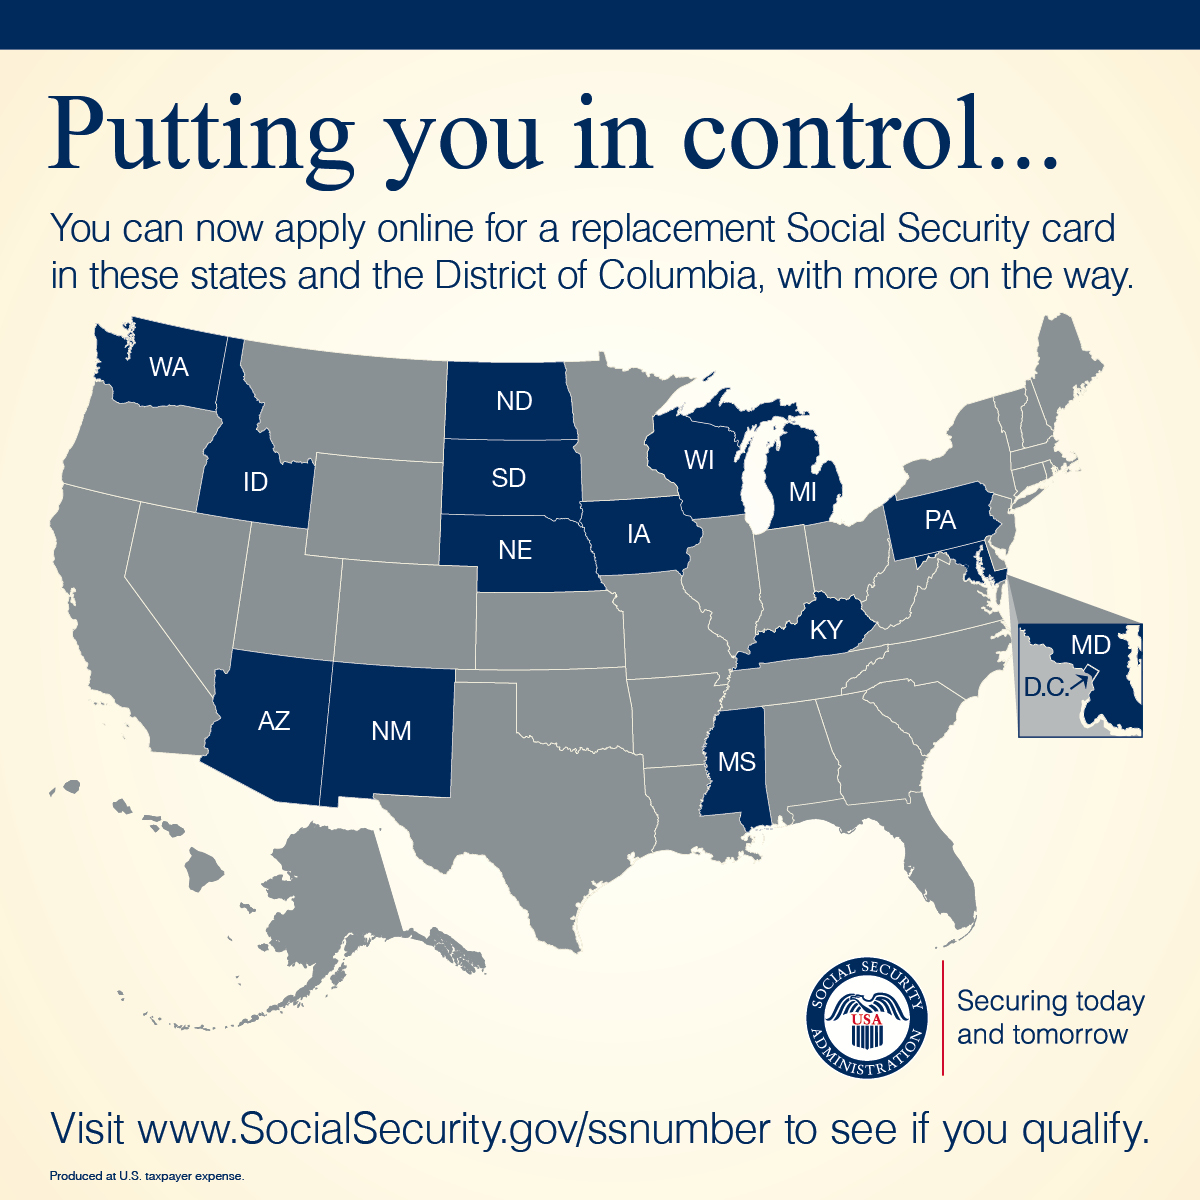 More Information About Replacing a Social Security Card